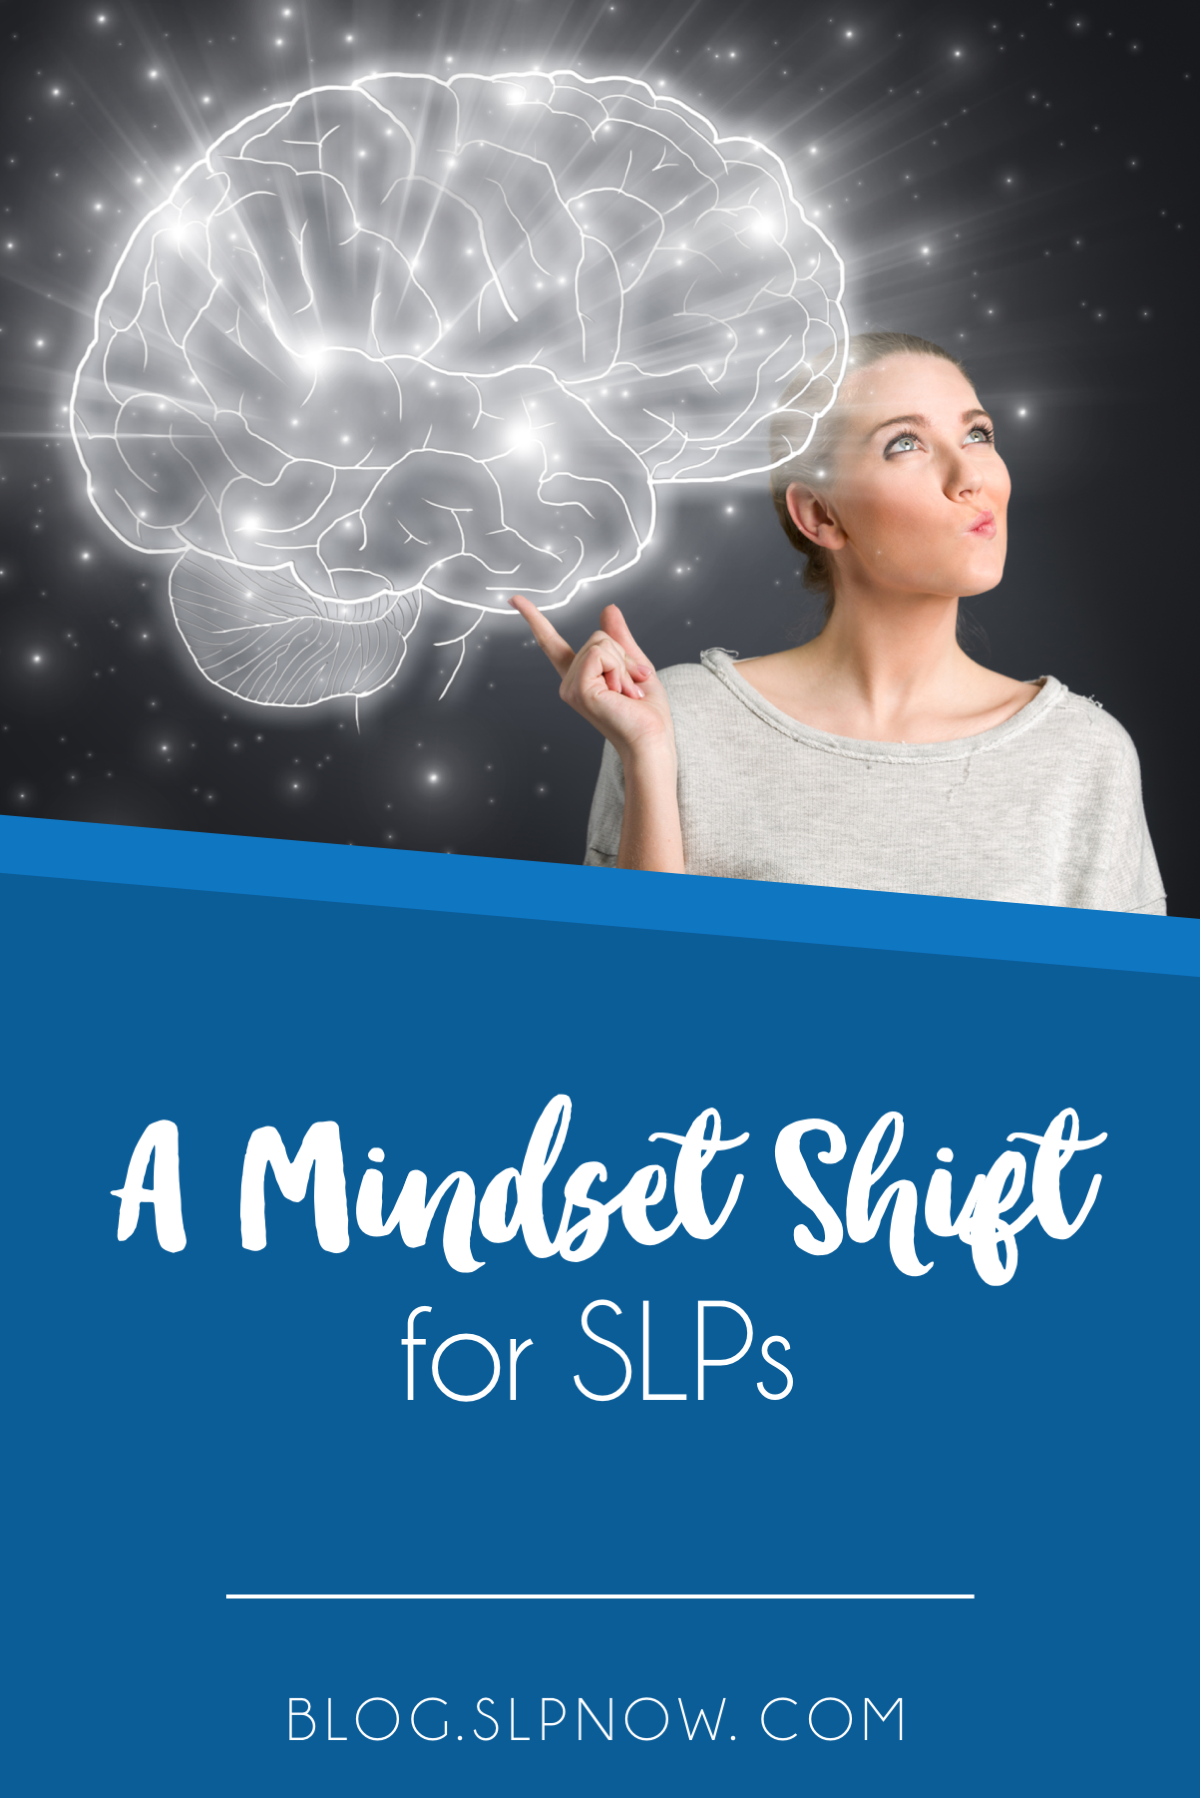 Working in any aspect of the field of education is extremely challenging, including working as an SLP. We know that SLPs also can feel burned out, exhausted, and without support. However, when you feel the urge to complain, consider trying to this mindset shift trick to see how it helps you.